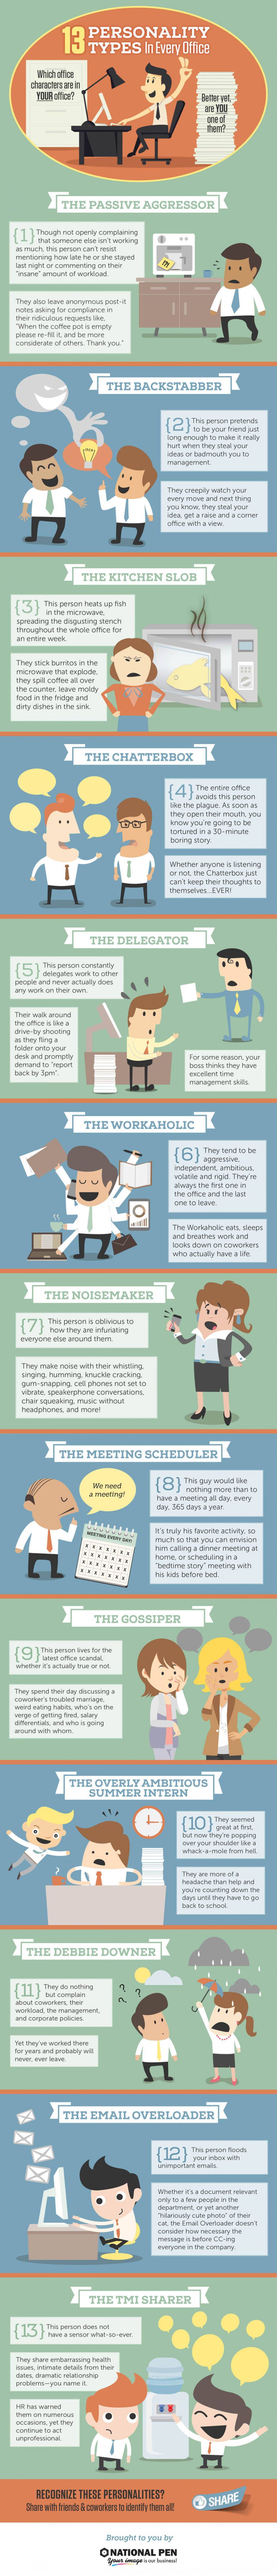 13 Personality Types in Every Office Infographic